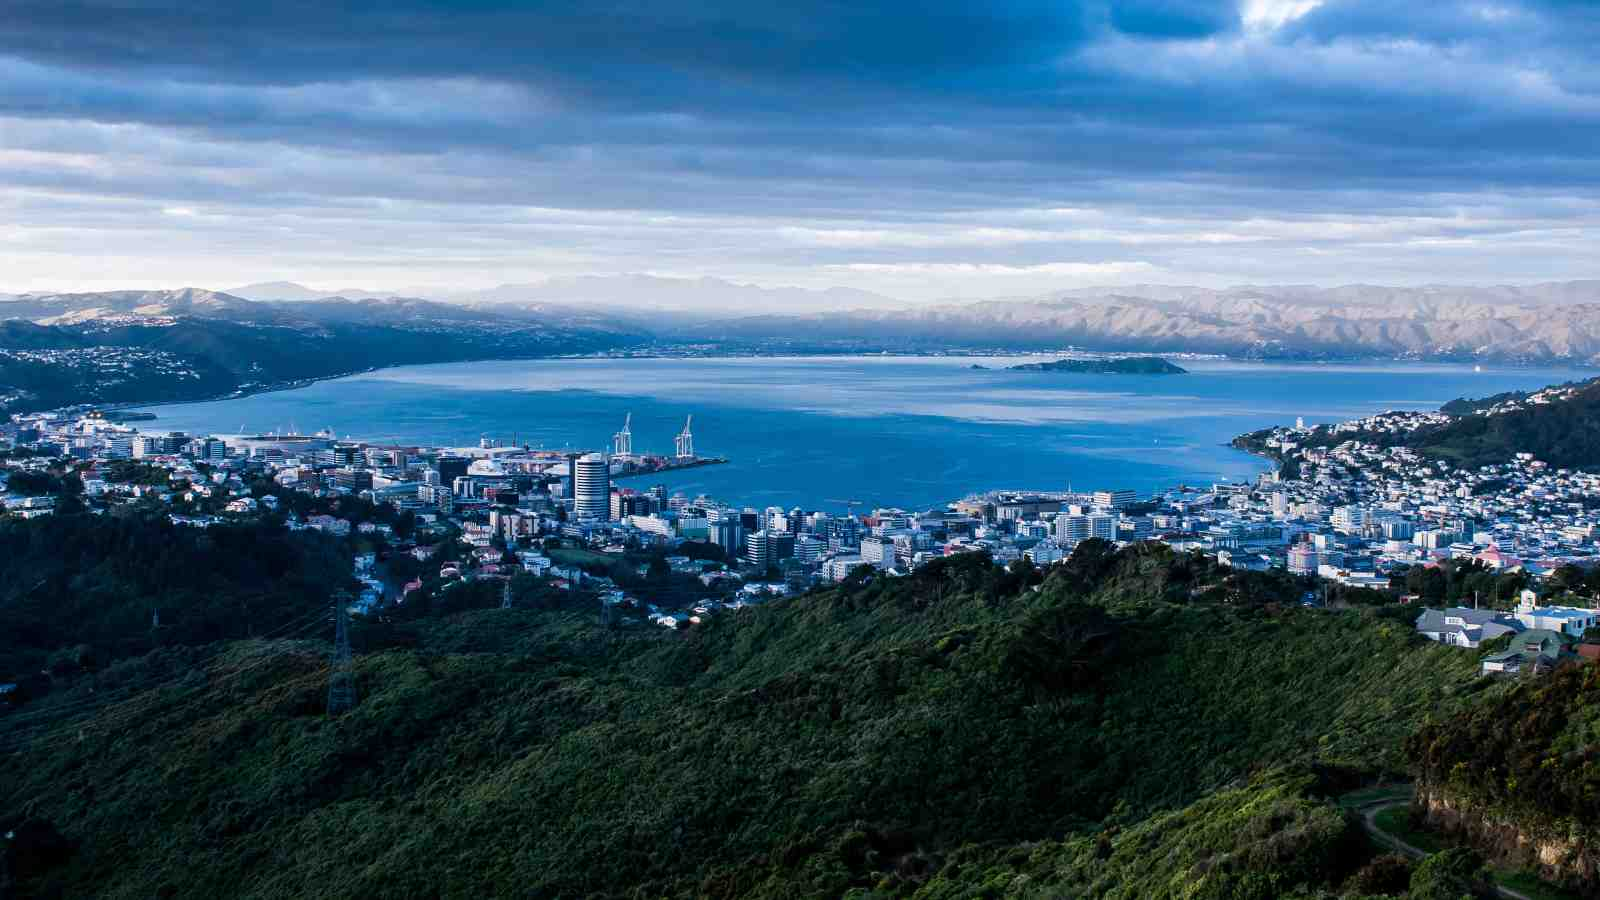 New Zealand News Wallpaper: Conference To Explore New Zealand Way Of Life